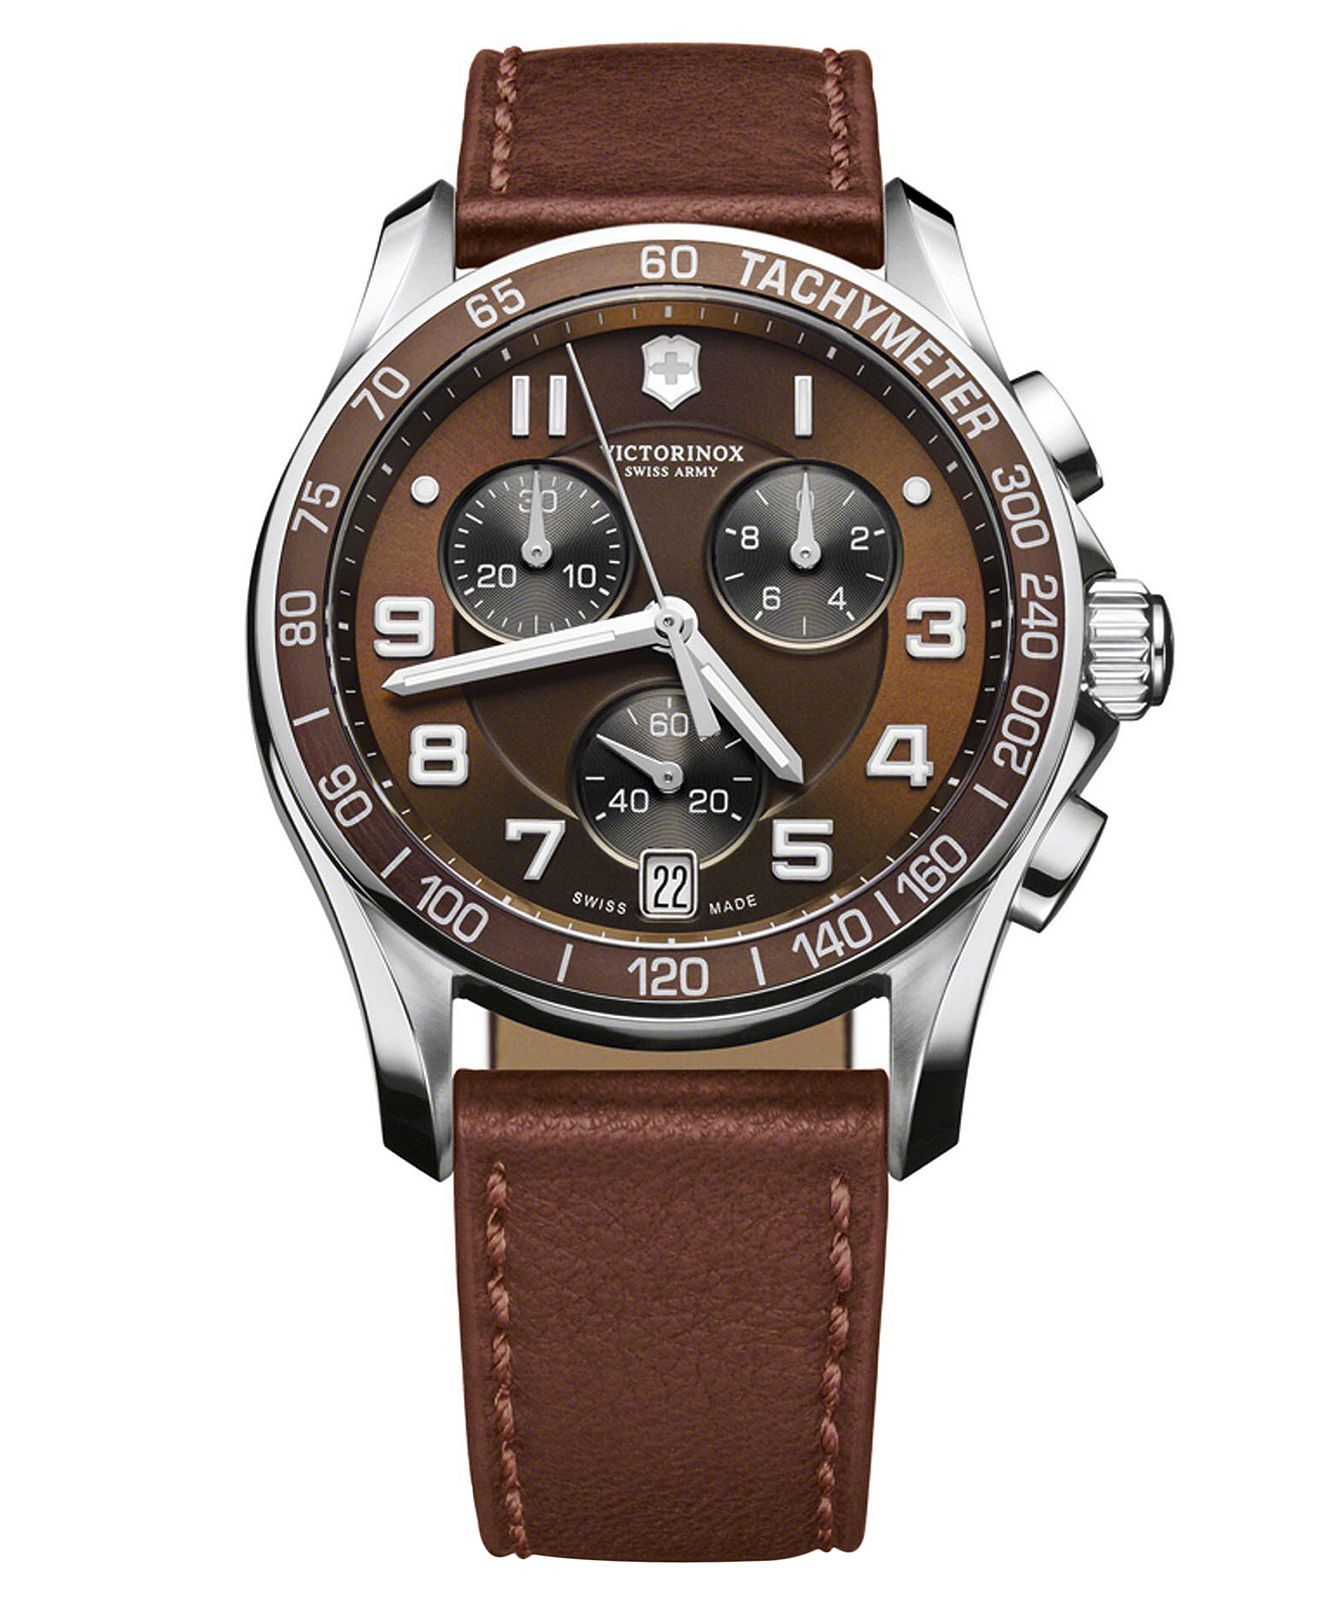 victorinox swiss army watch mens chronograph brown